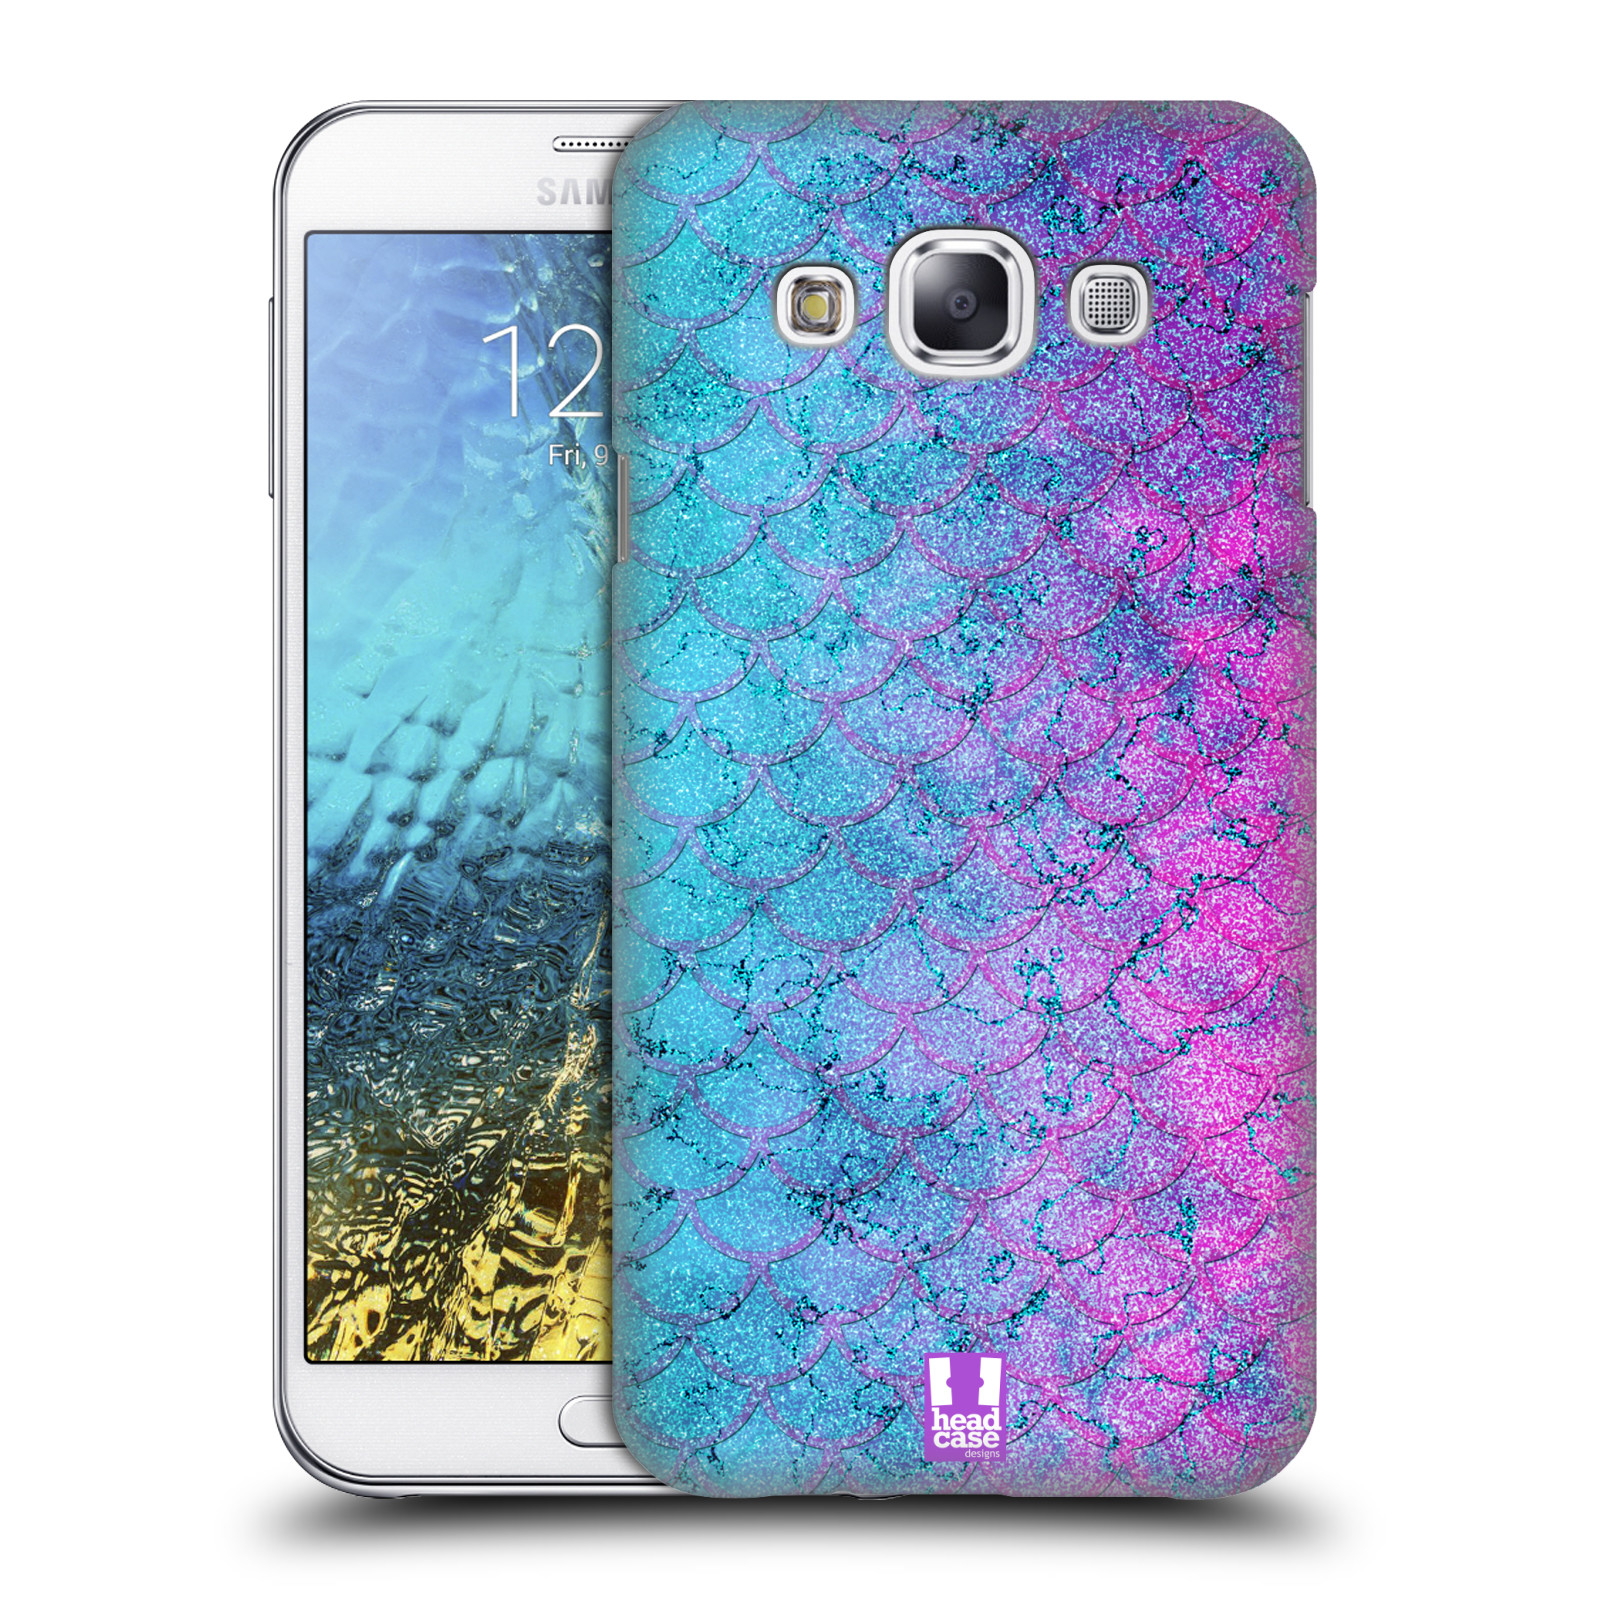 Head case designs mermaid scales hard back case for for Cell phone cover design ideas